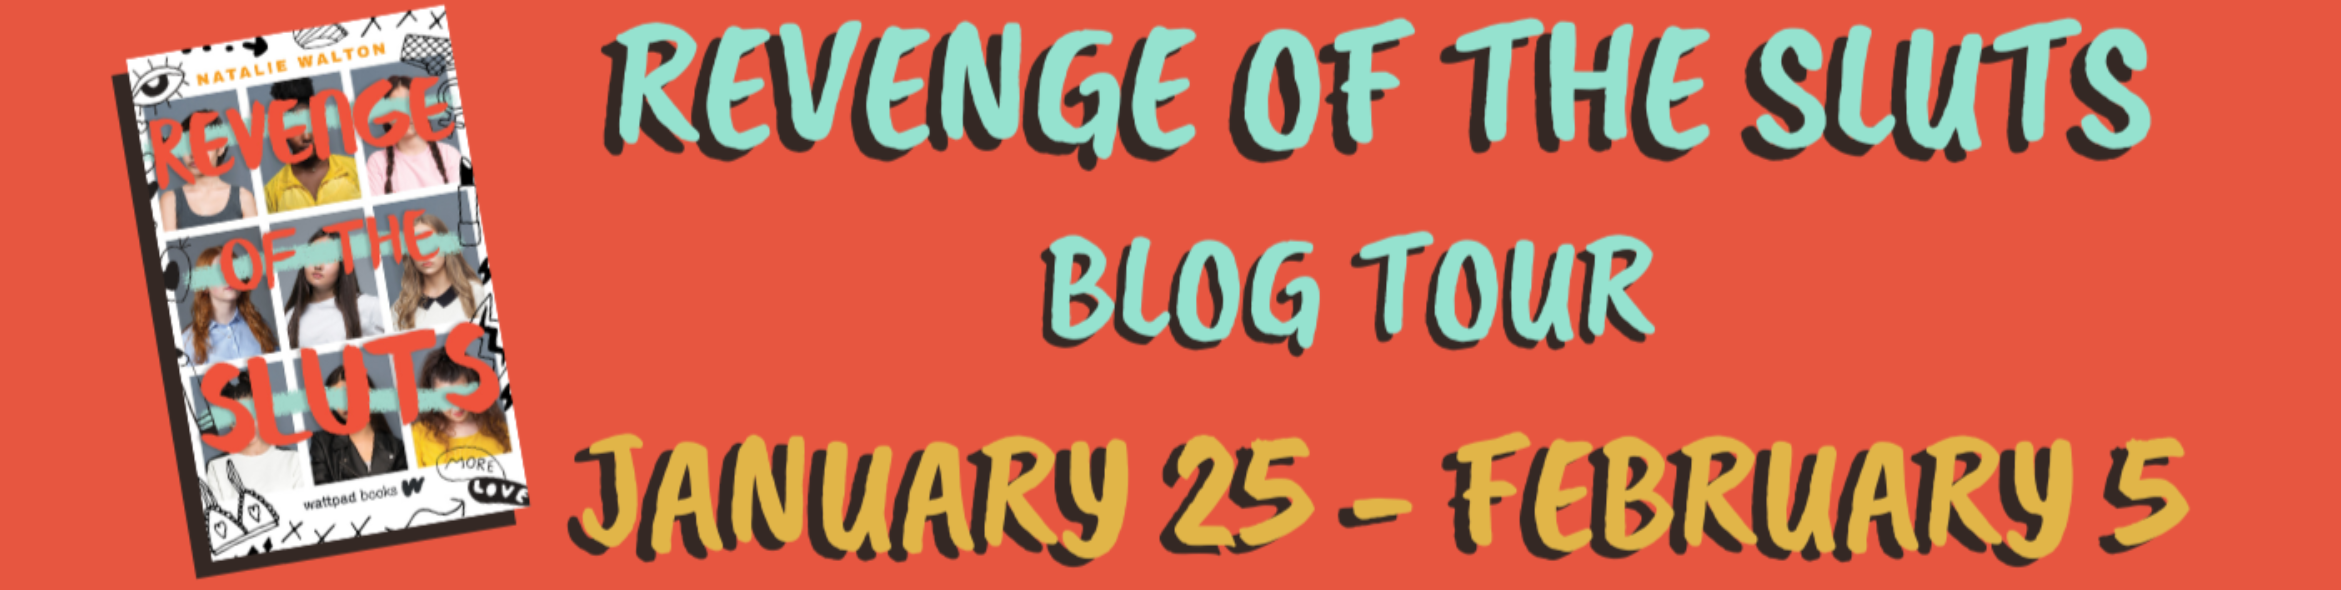 Blog Tour: Revenge of the Sluts by Natalie Walton (Interview + Giveaway!)